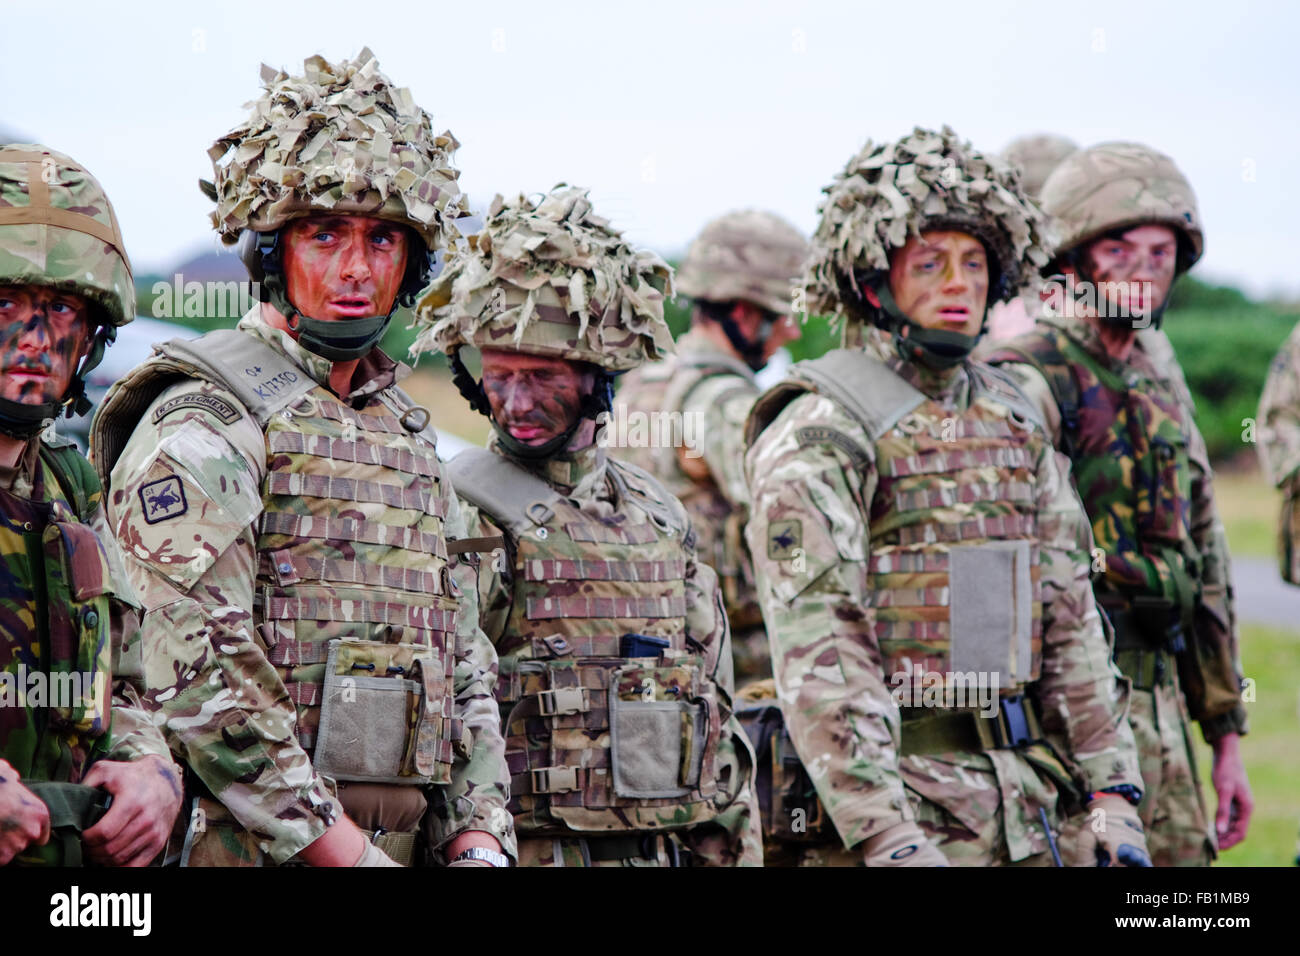 Royal Air Force RAF regiment soldiers line up in their camouflage flack jackets before a training exercise. - Stock Image